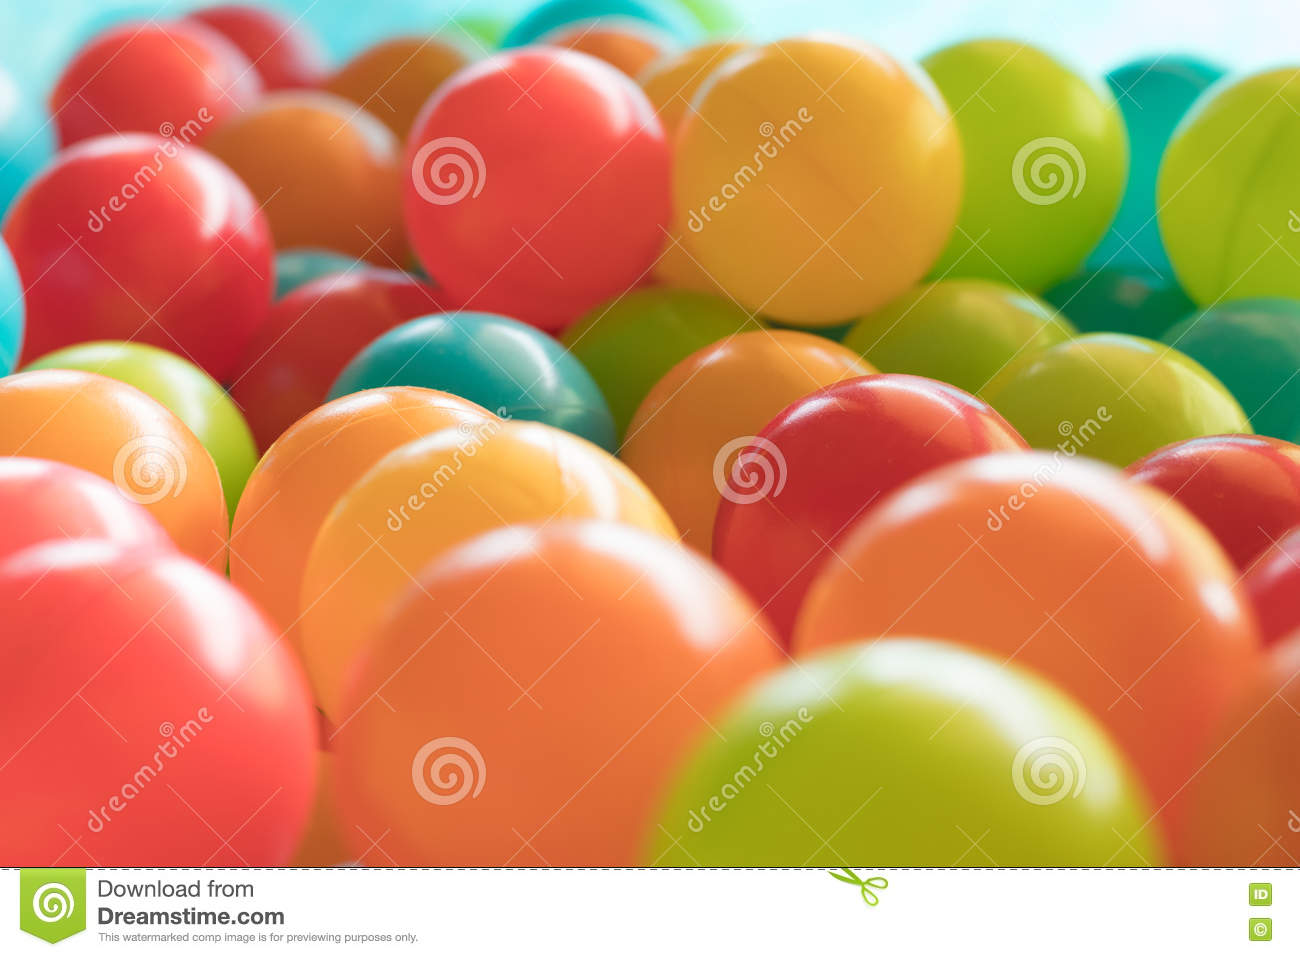 Bright and Colorful plastic toy balls, ball pit, close up